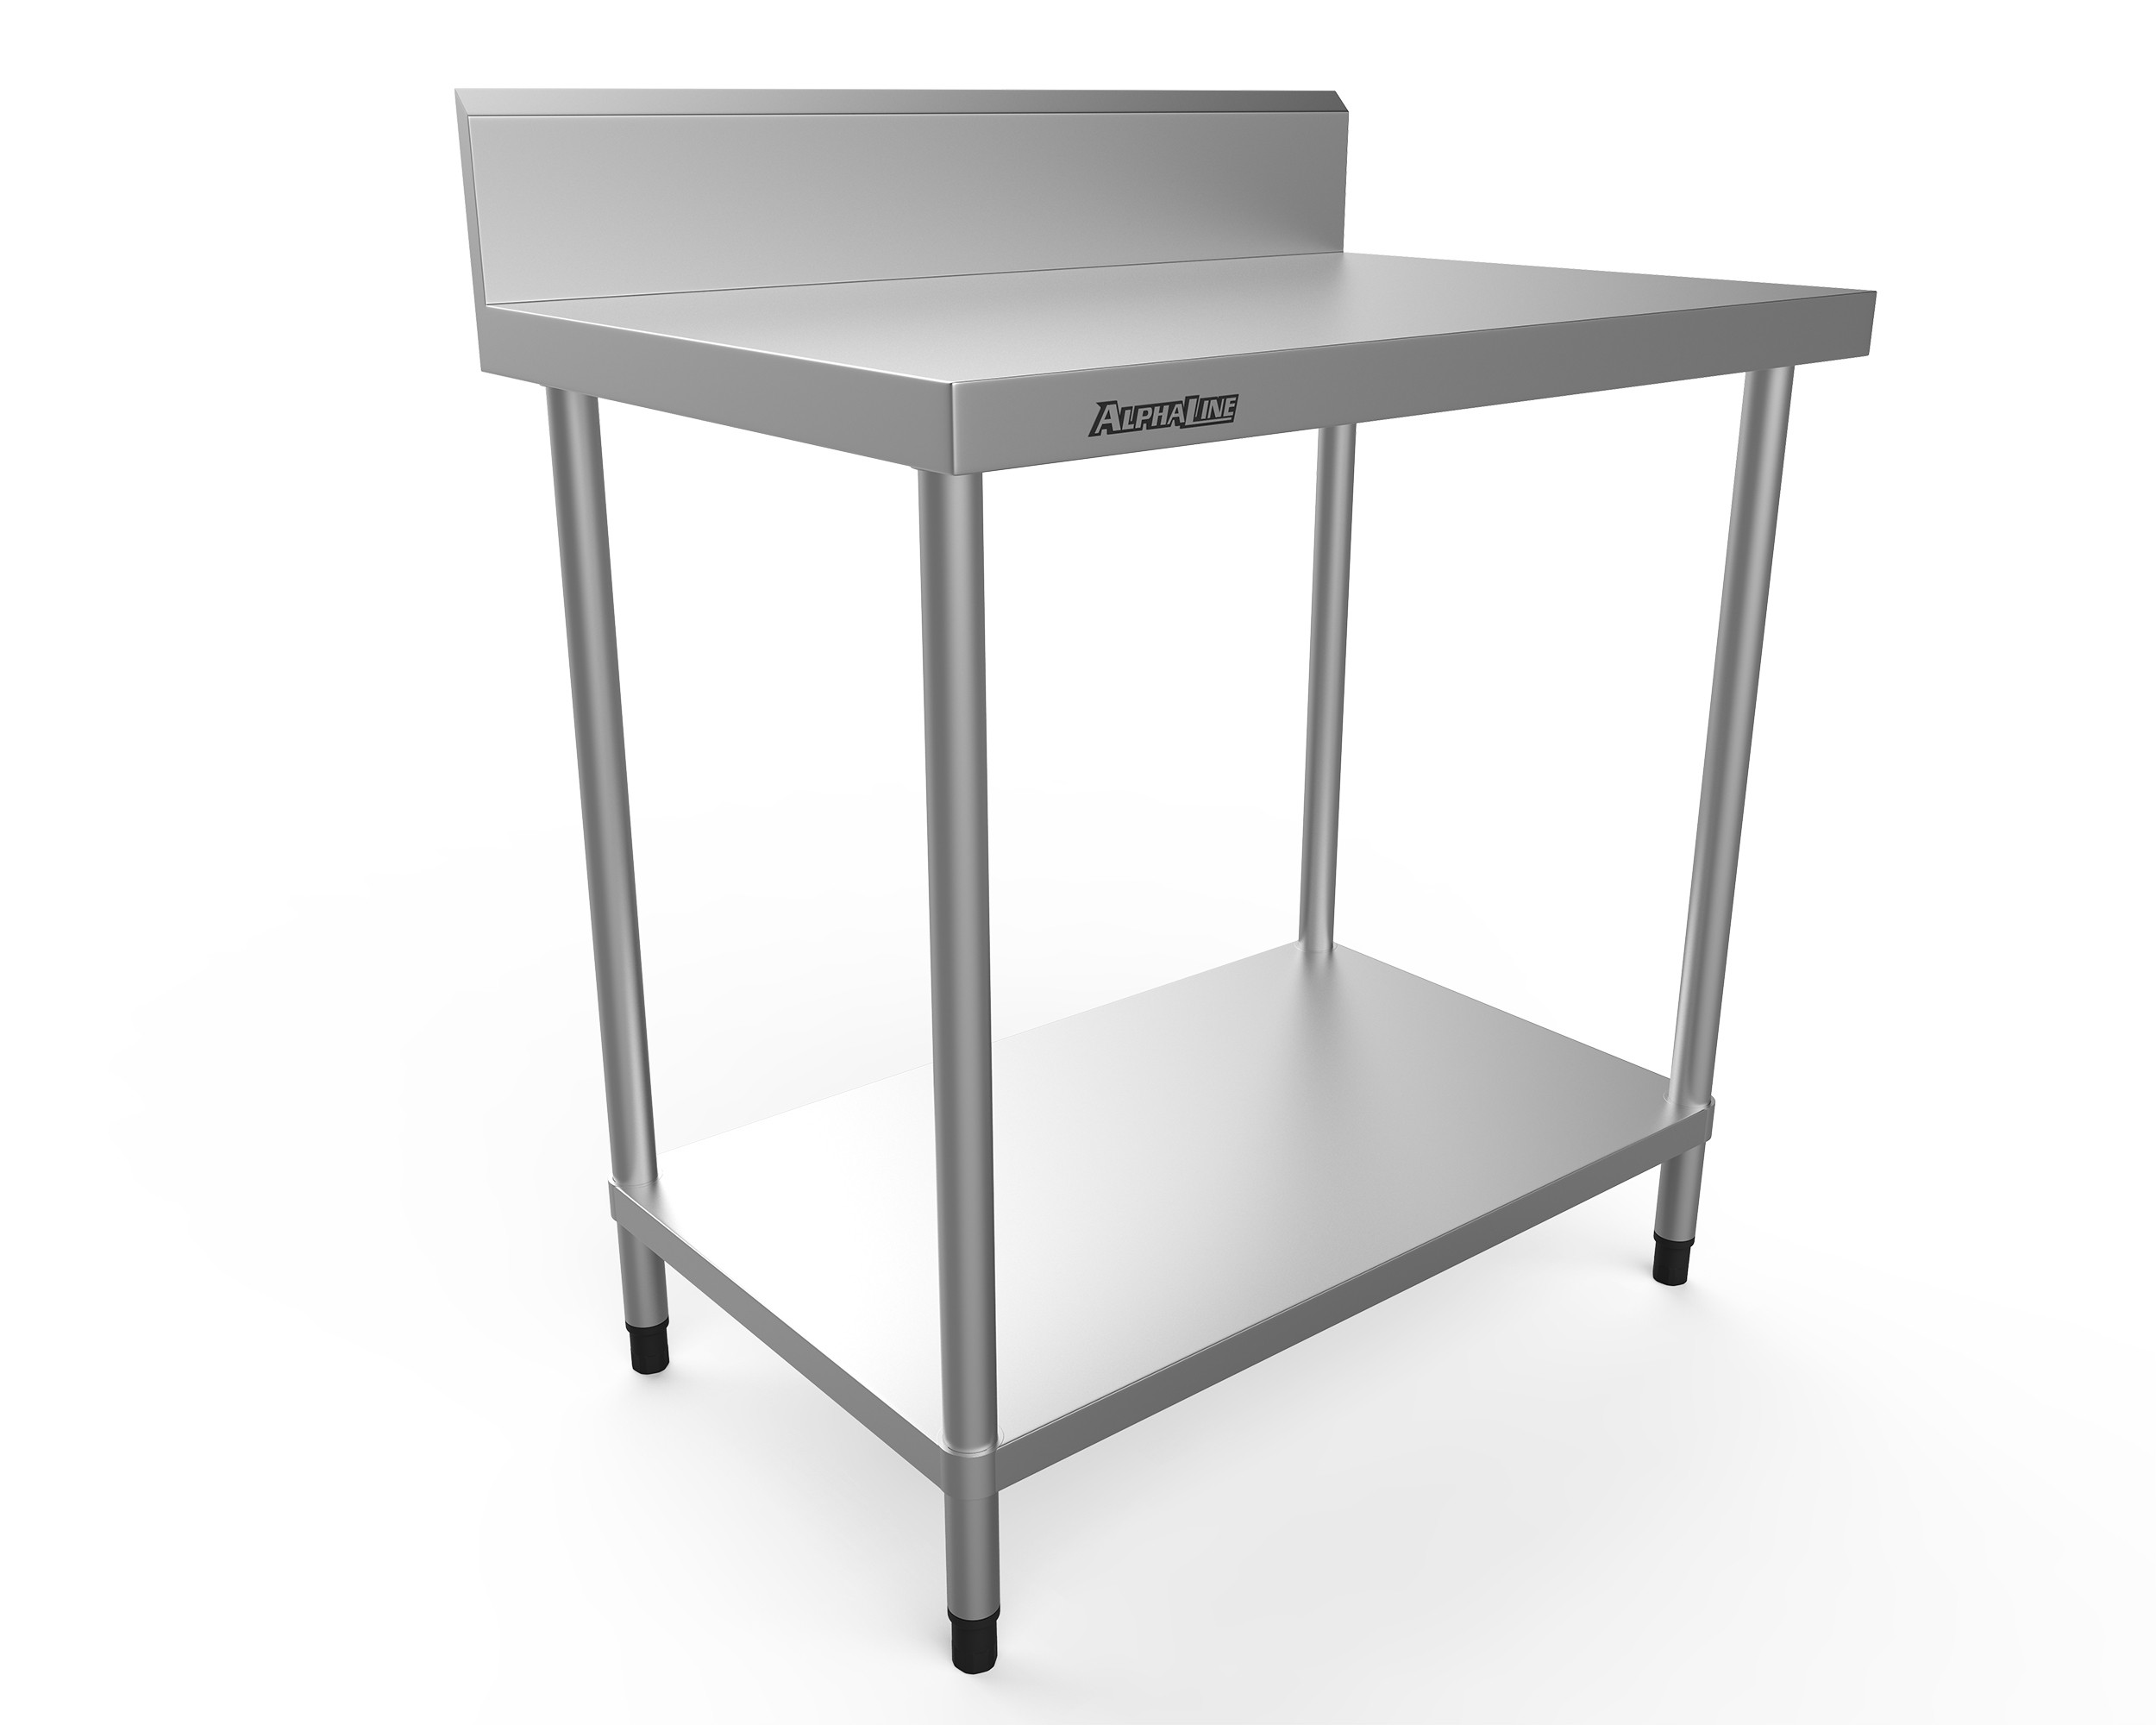 Stainless Steel Bench with Splash Back - 900 x 600 - ALP-SB-6090